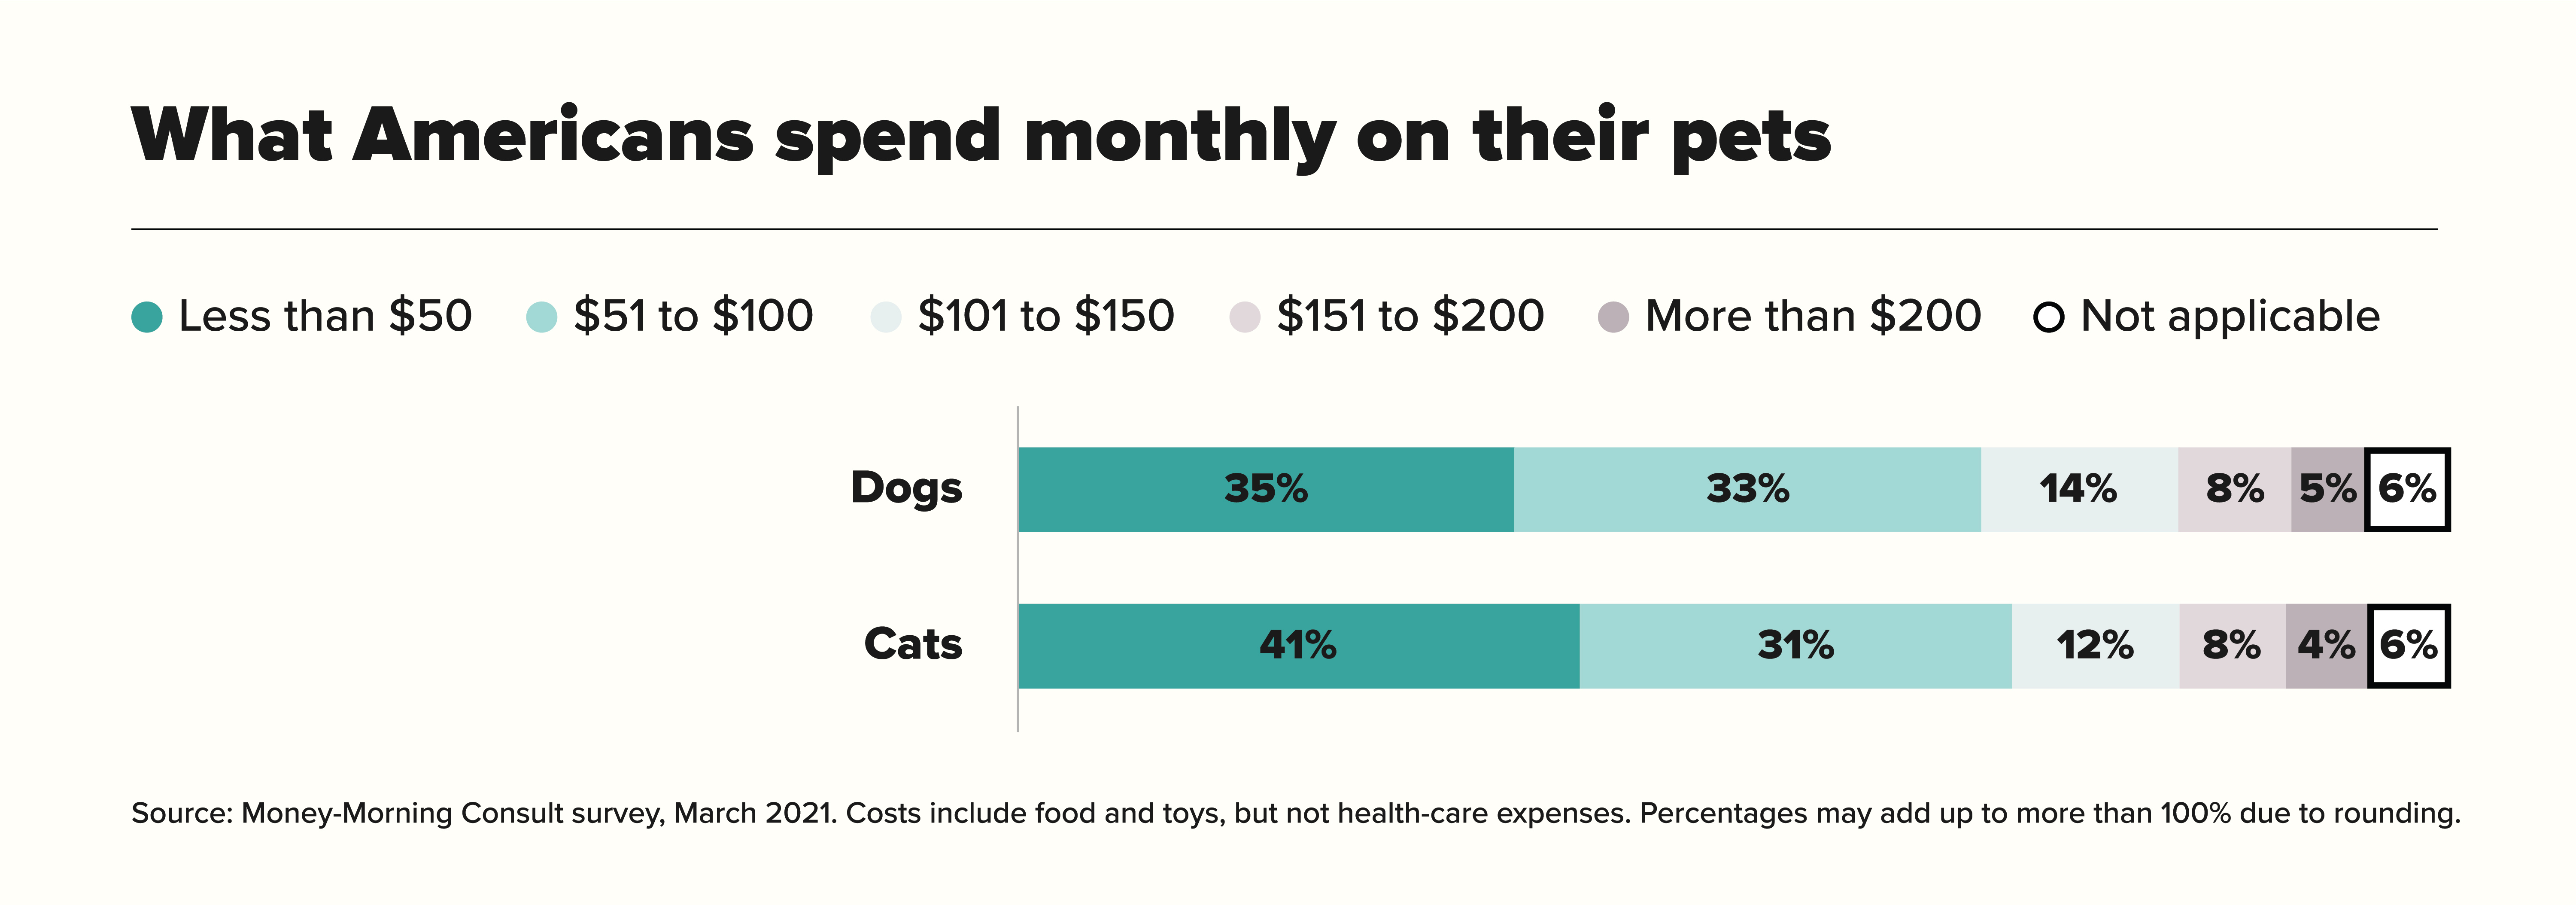 What Americans spend monthly on their pets chart